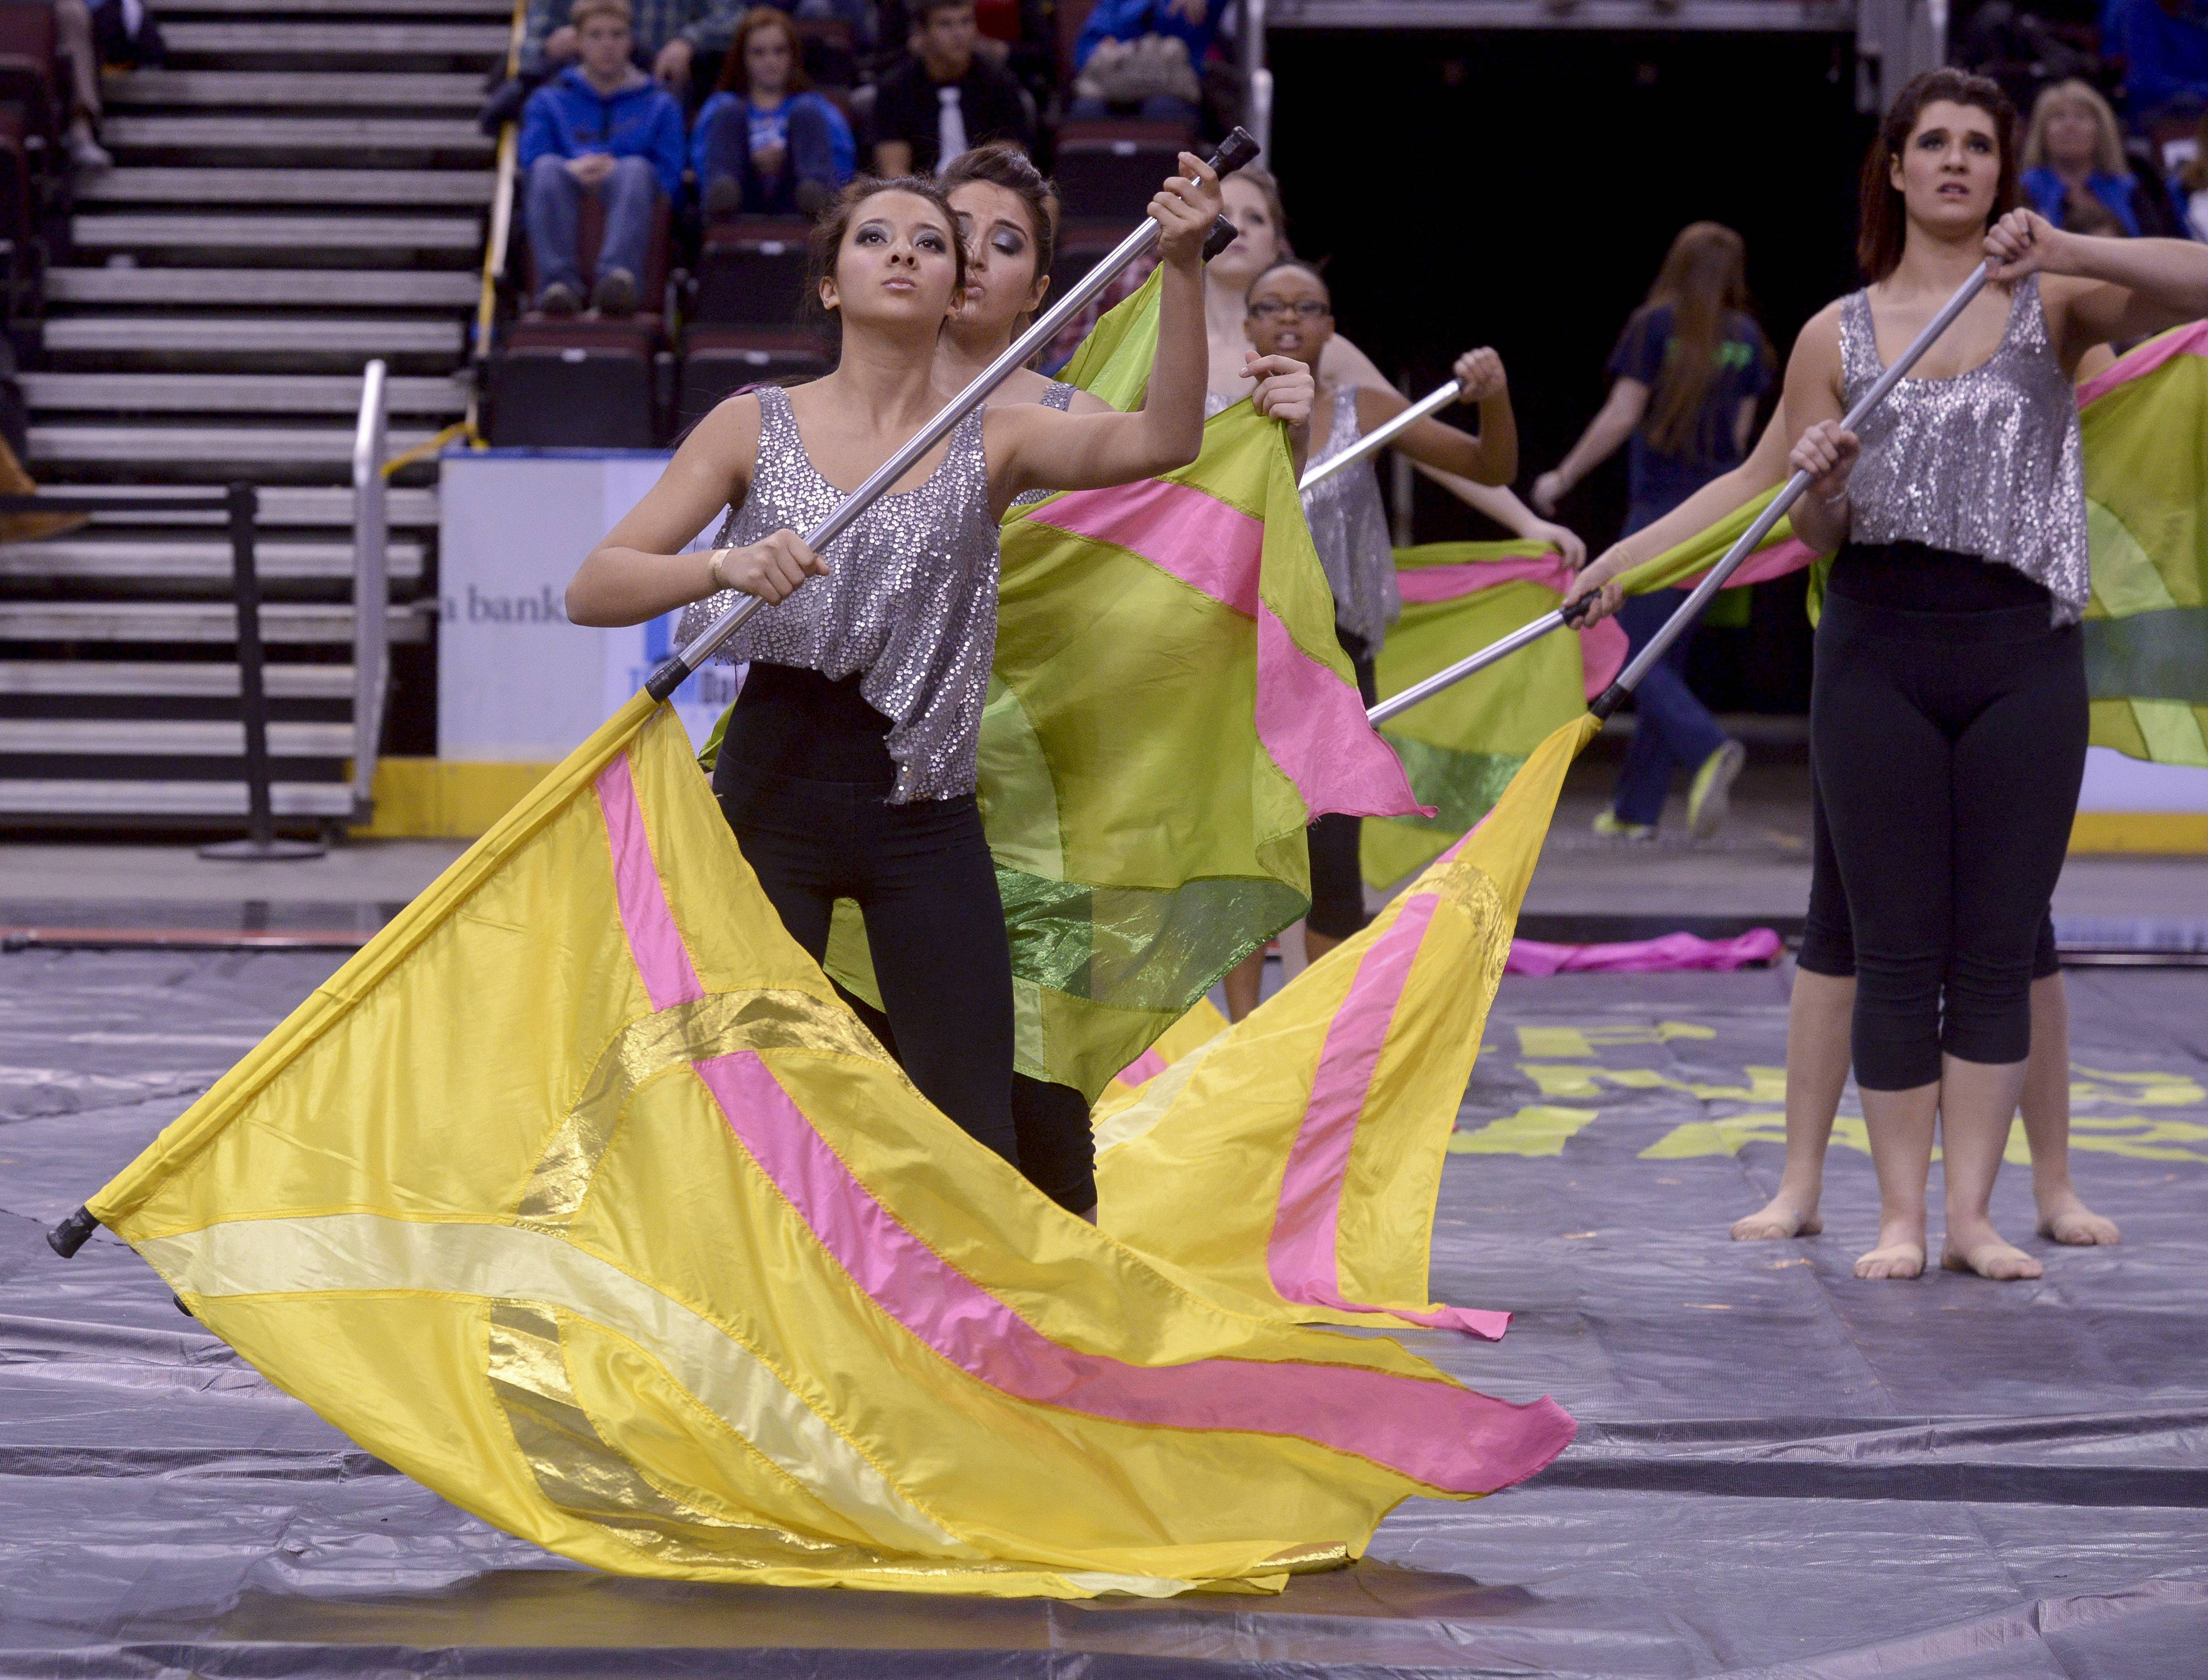 Schaumburg High School performs in the Varsity Flag Winterguard Show category during the TEAMDance Illinois 2014 Grand Championship in Peoria, Sunday March 2nd.